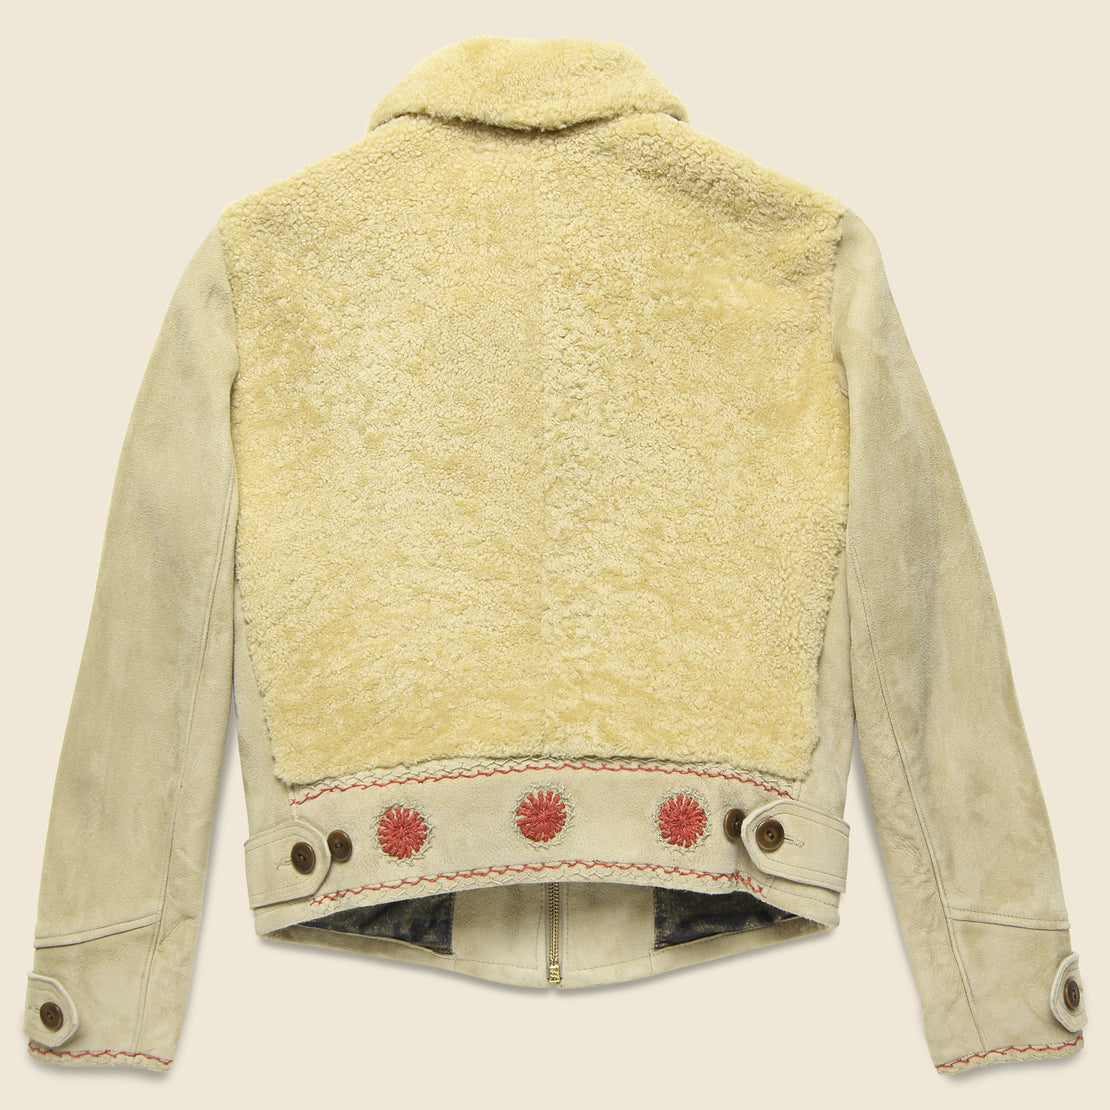 Williams Shearling Embroidered Suede Jacket - Cream